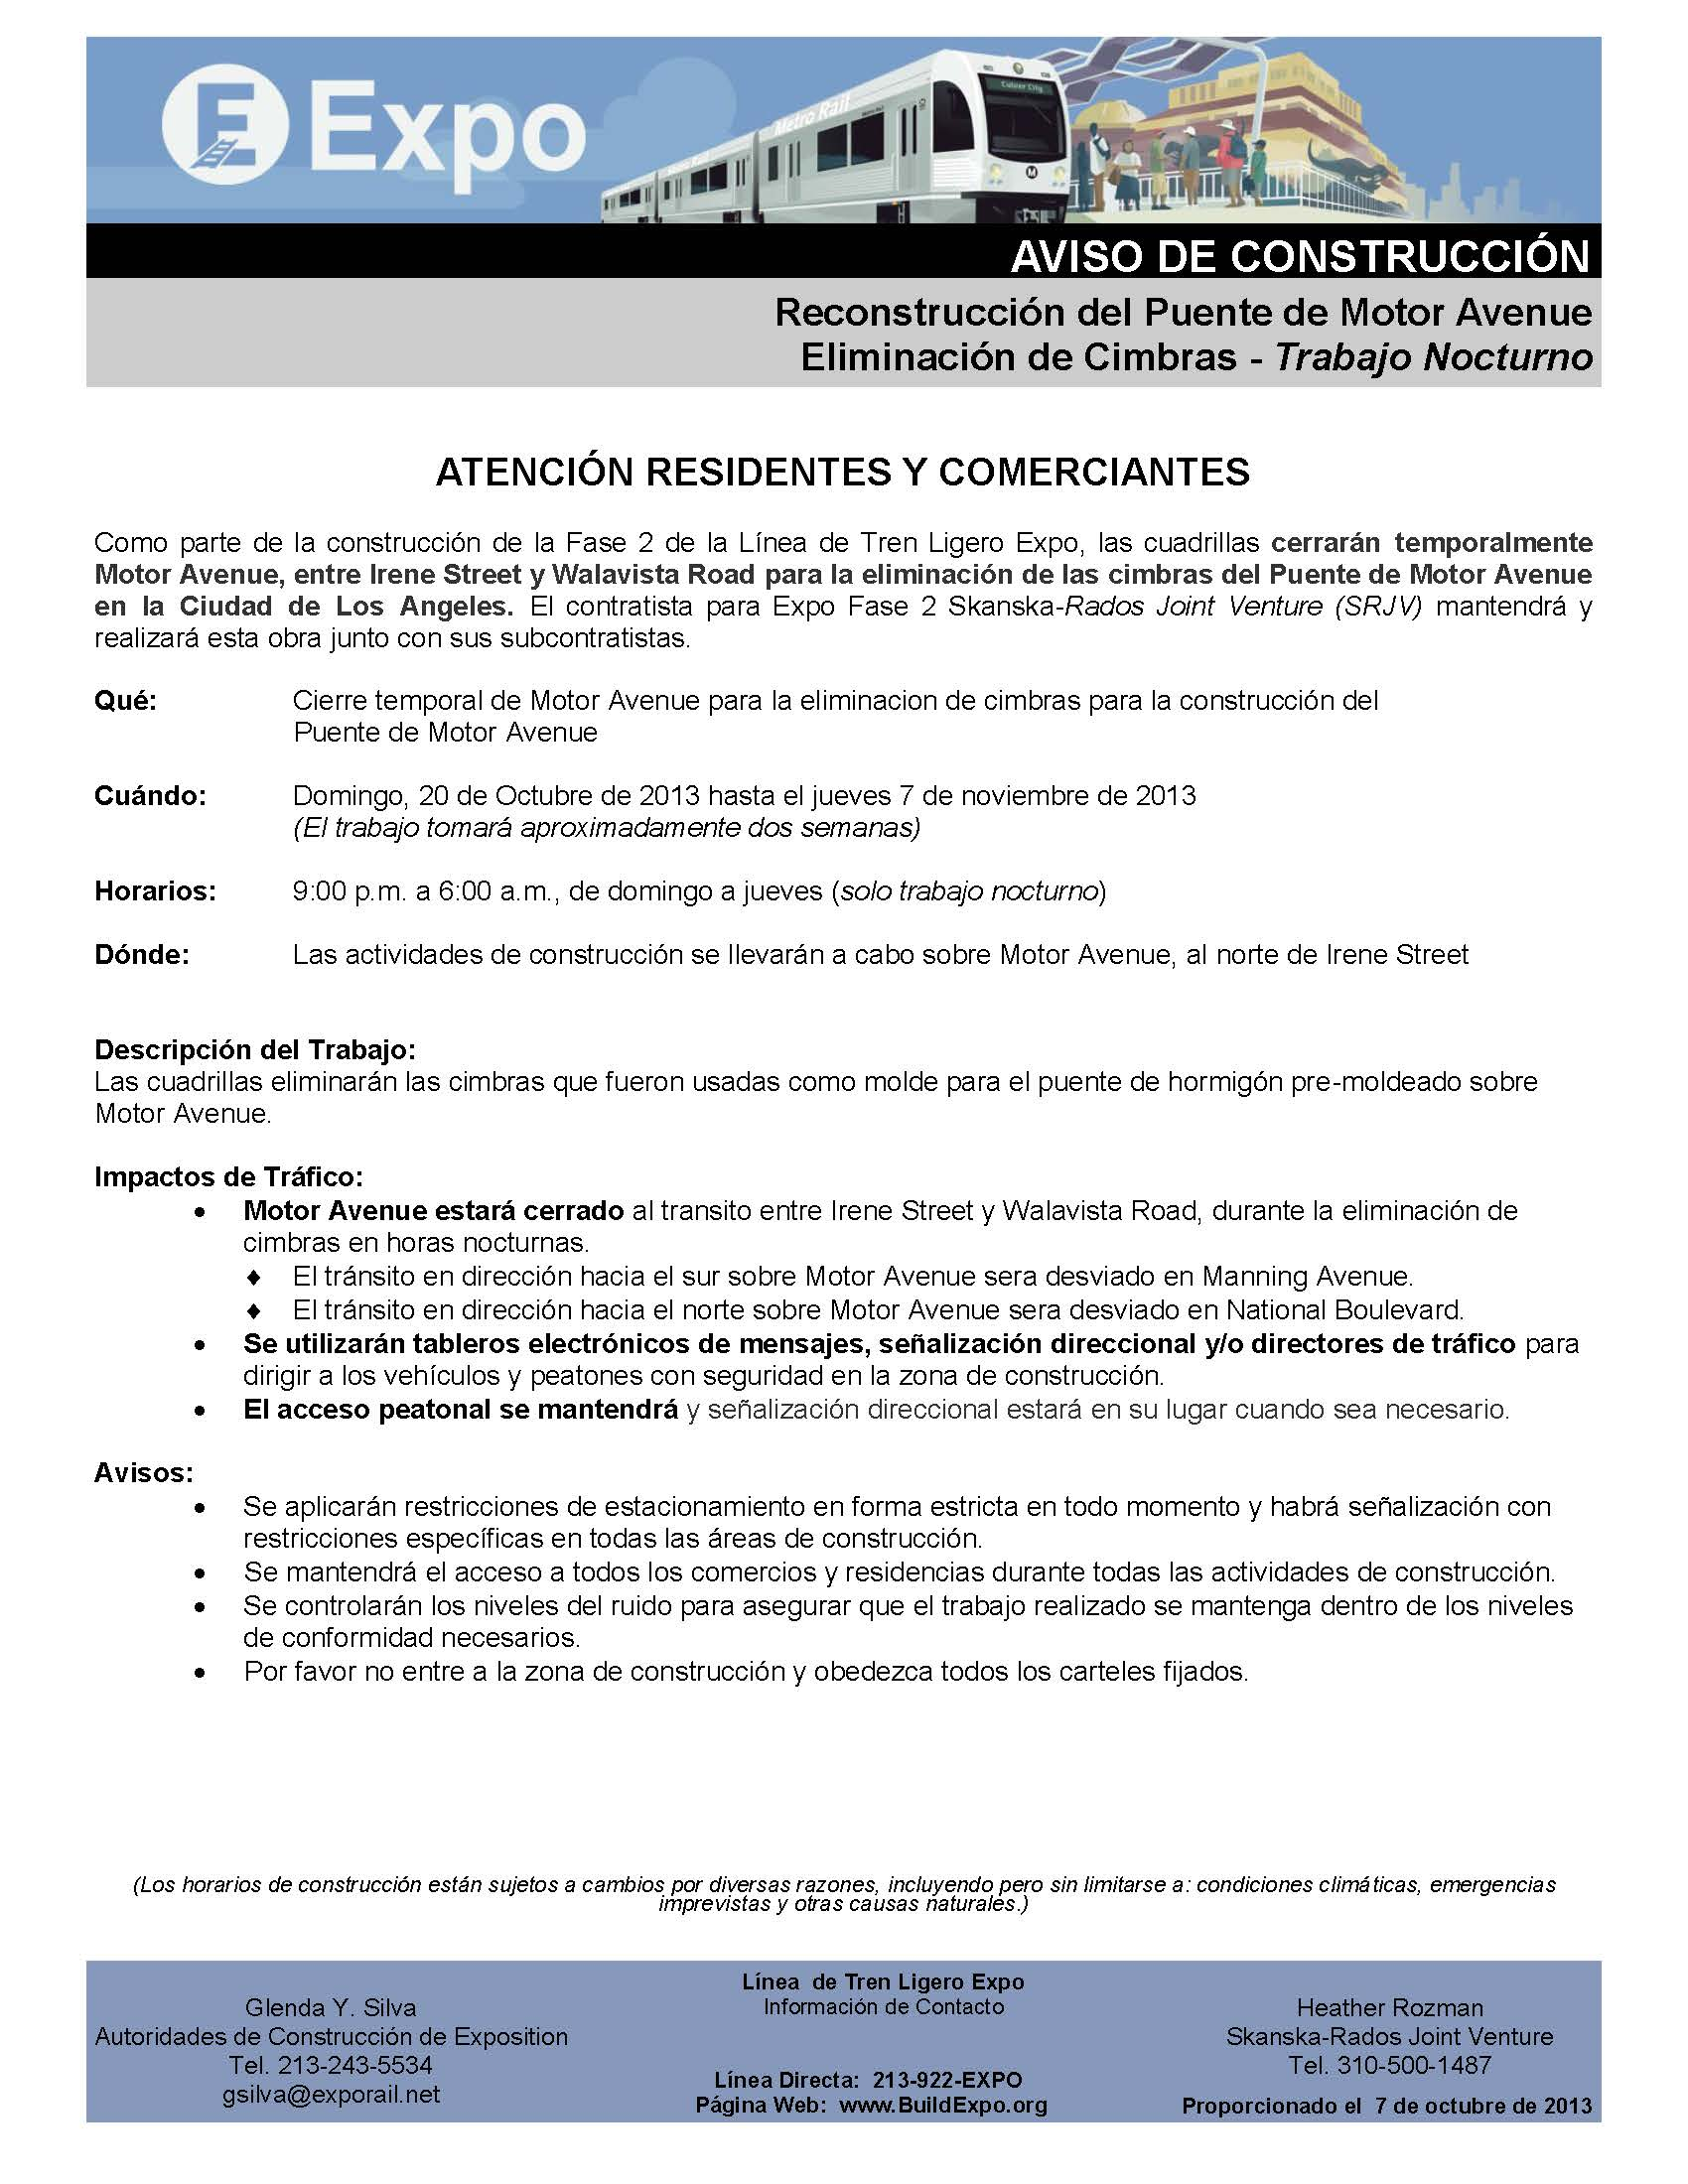 100713-EXPO-P2-CONSTRUCTION-NOTICE-Motor-Ave-Bridge-FALSEWORK-REMOVAL_Page_2